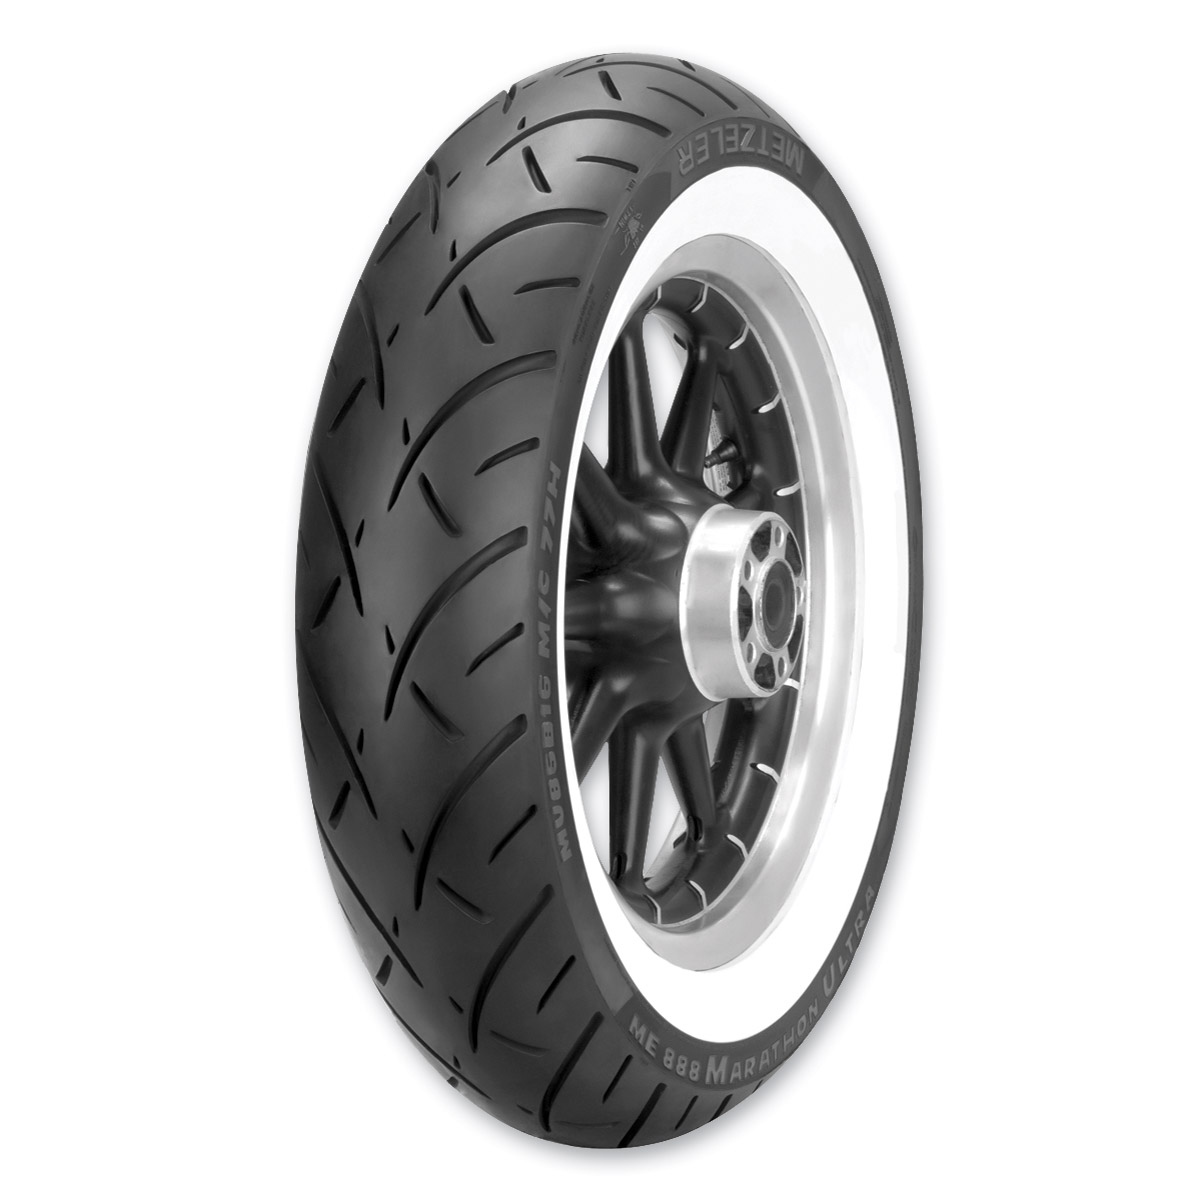 Metzeler ME888 130/90-16 Wide Whitewall Rear Tire